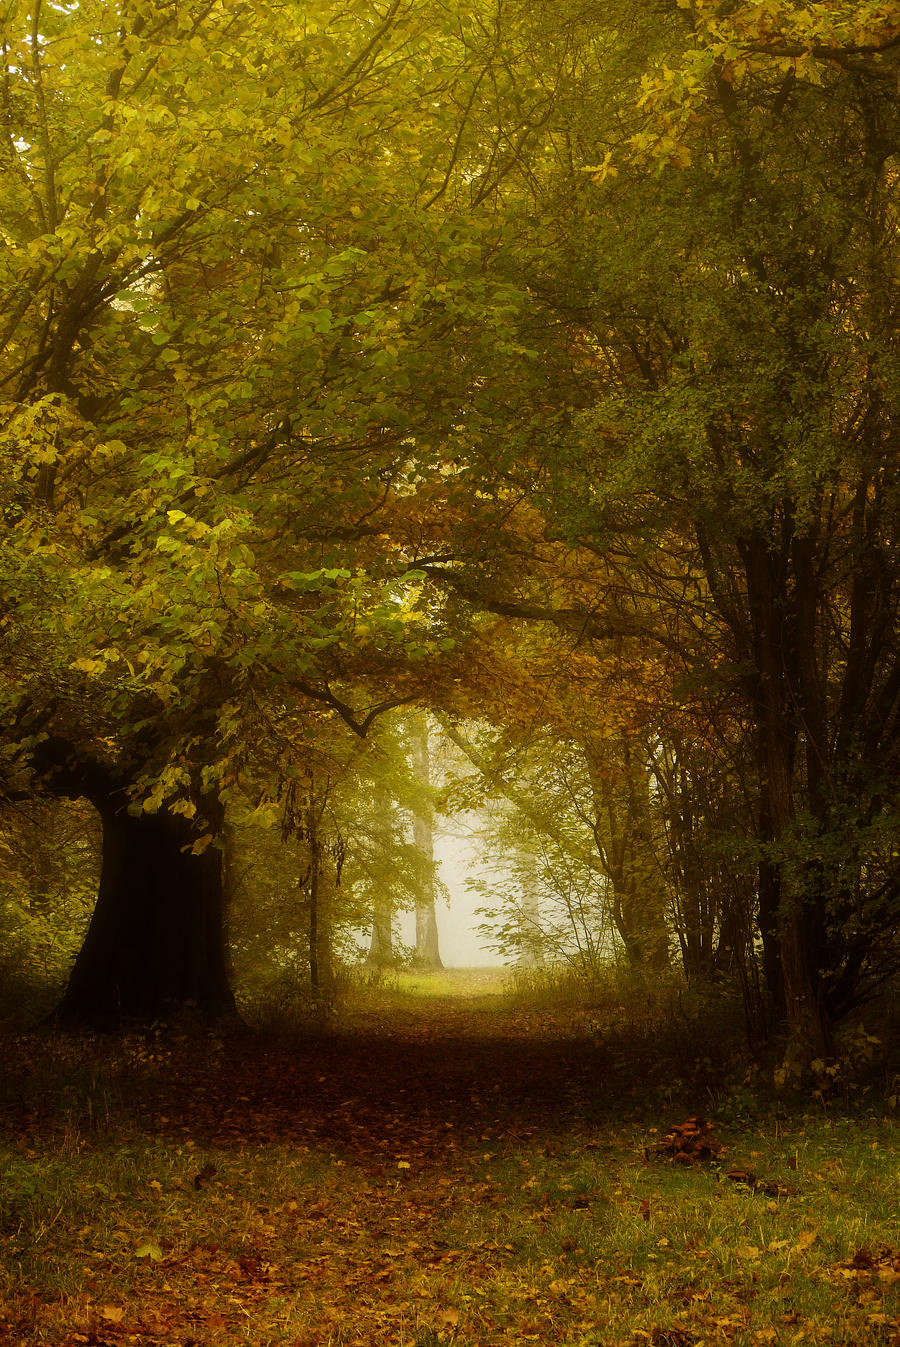 Entrance To Autumn by Grandmagoingnuts